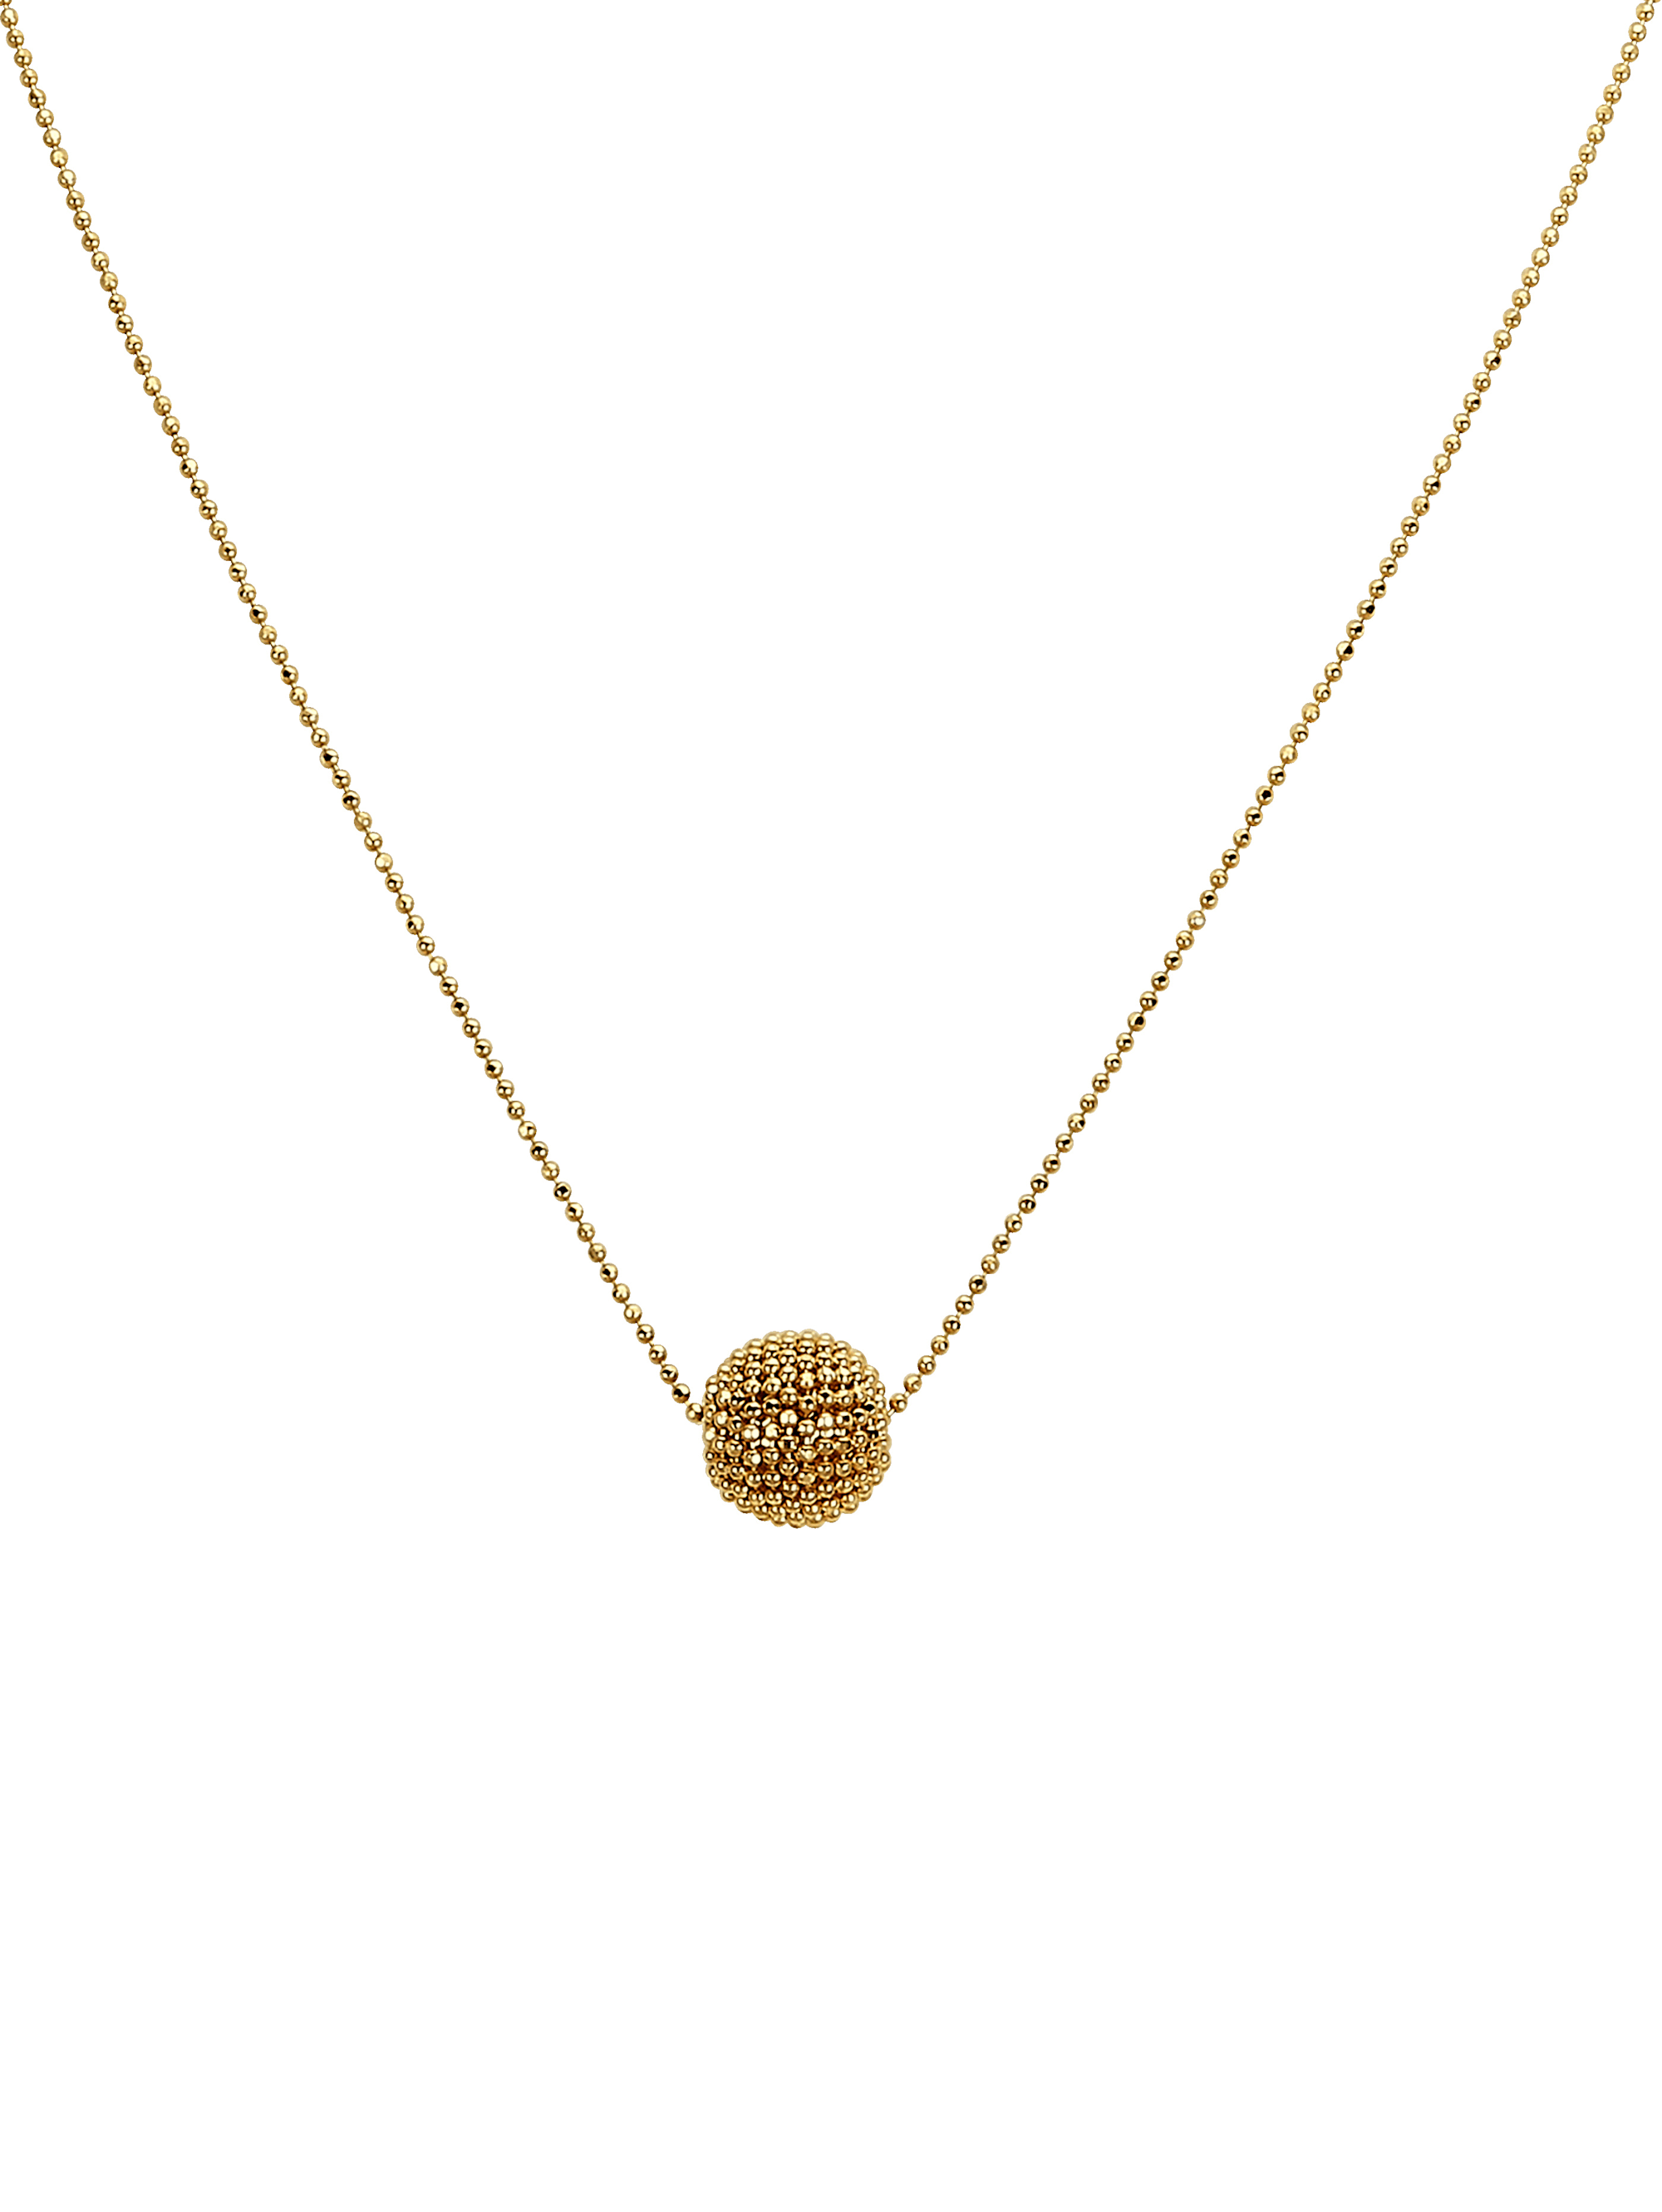 Diemer Gold Collier in Gold 750 QSCTJ